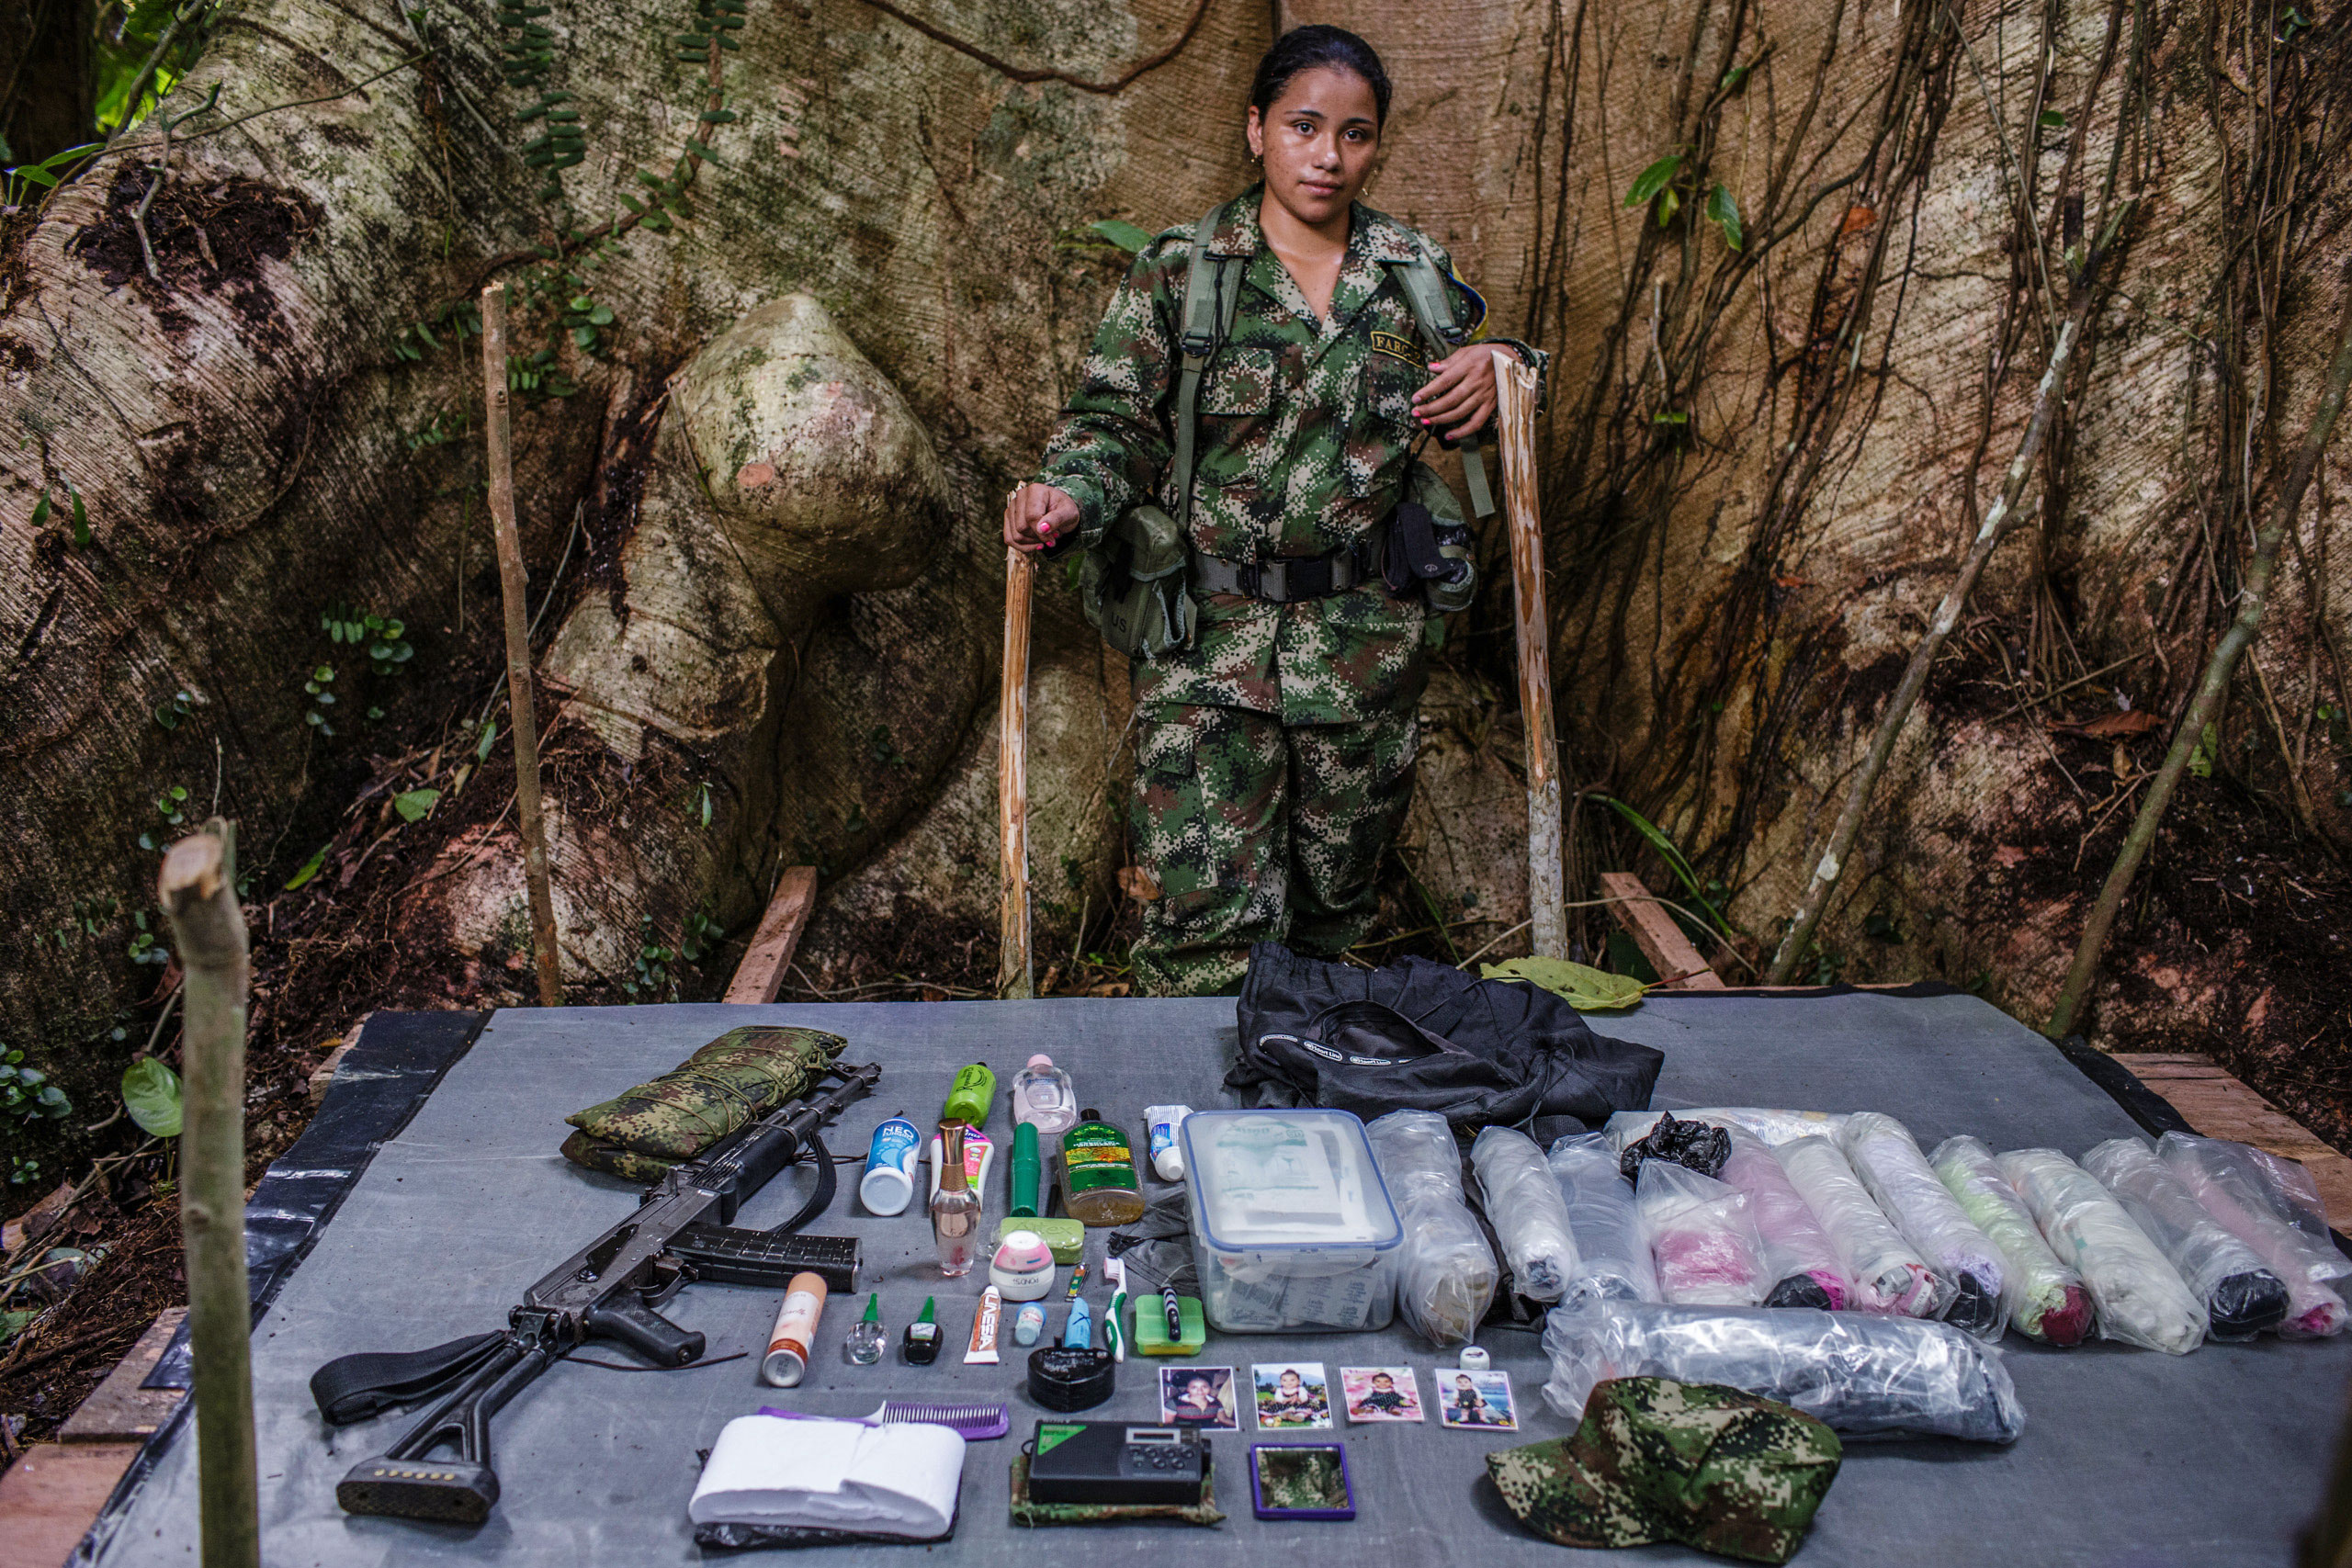 Katherine,   20-years old, has been with FARC for seven years.                                She has five older brothers, all of whom are guerrilla fighters. Katherine is a nurse who works with the FARC medical team. Her nine-month-old daughter lives with her grandmother.